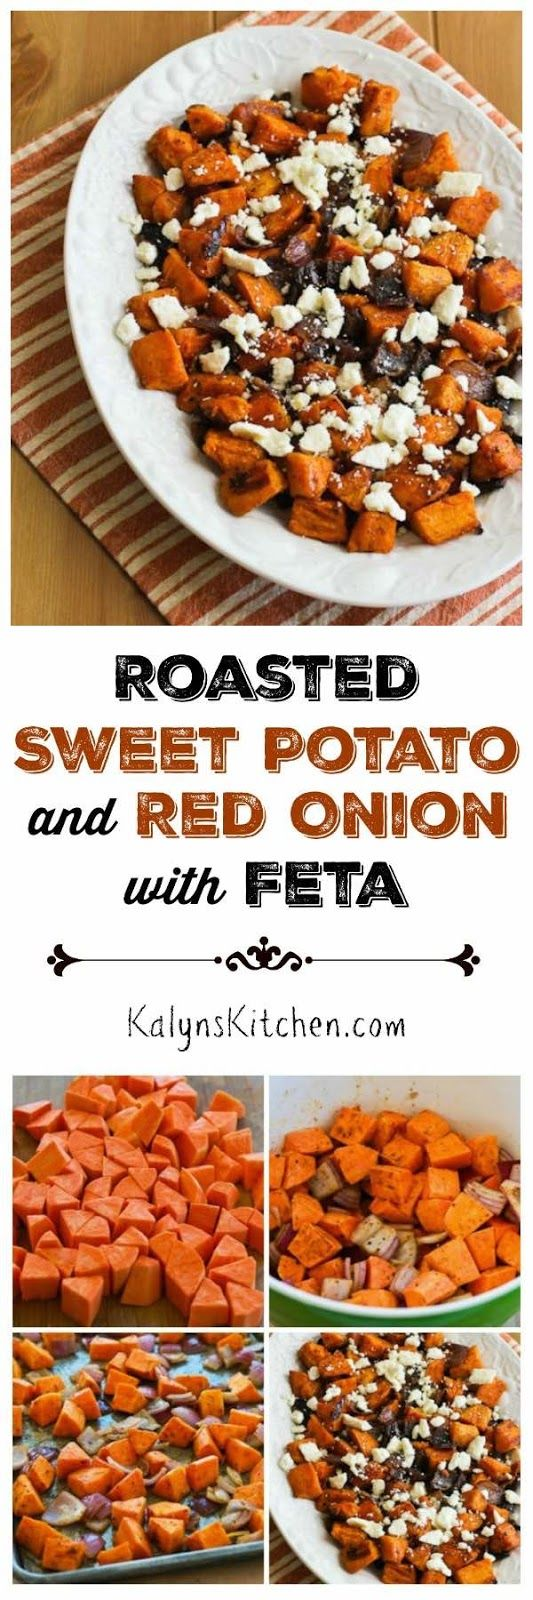 Roasted Sweet Potatoes and Red Onions with Feta are delicious for a holiday side dish, but I'd make this  for a delicious Meatless Monday dinner all winter long. There's a special spice mix that makes the sweet potatoes extra good.  [found on KalynsKitchen.com]